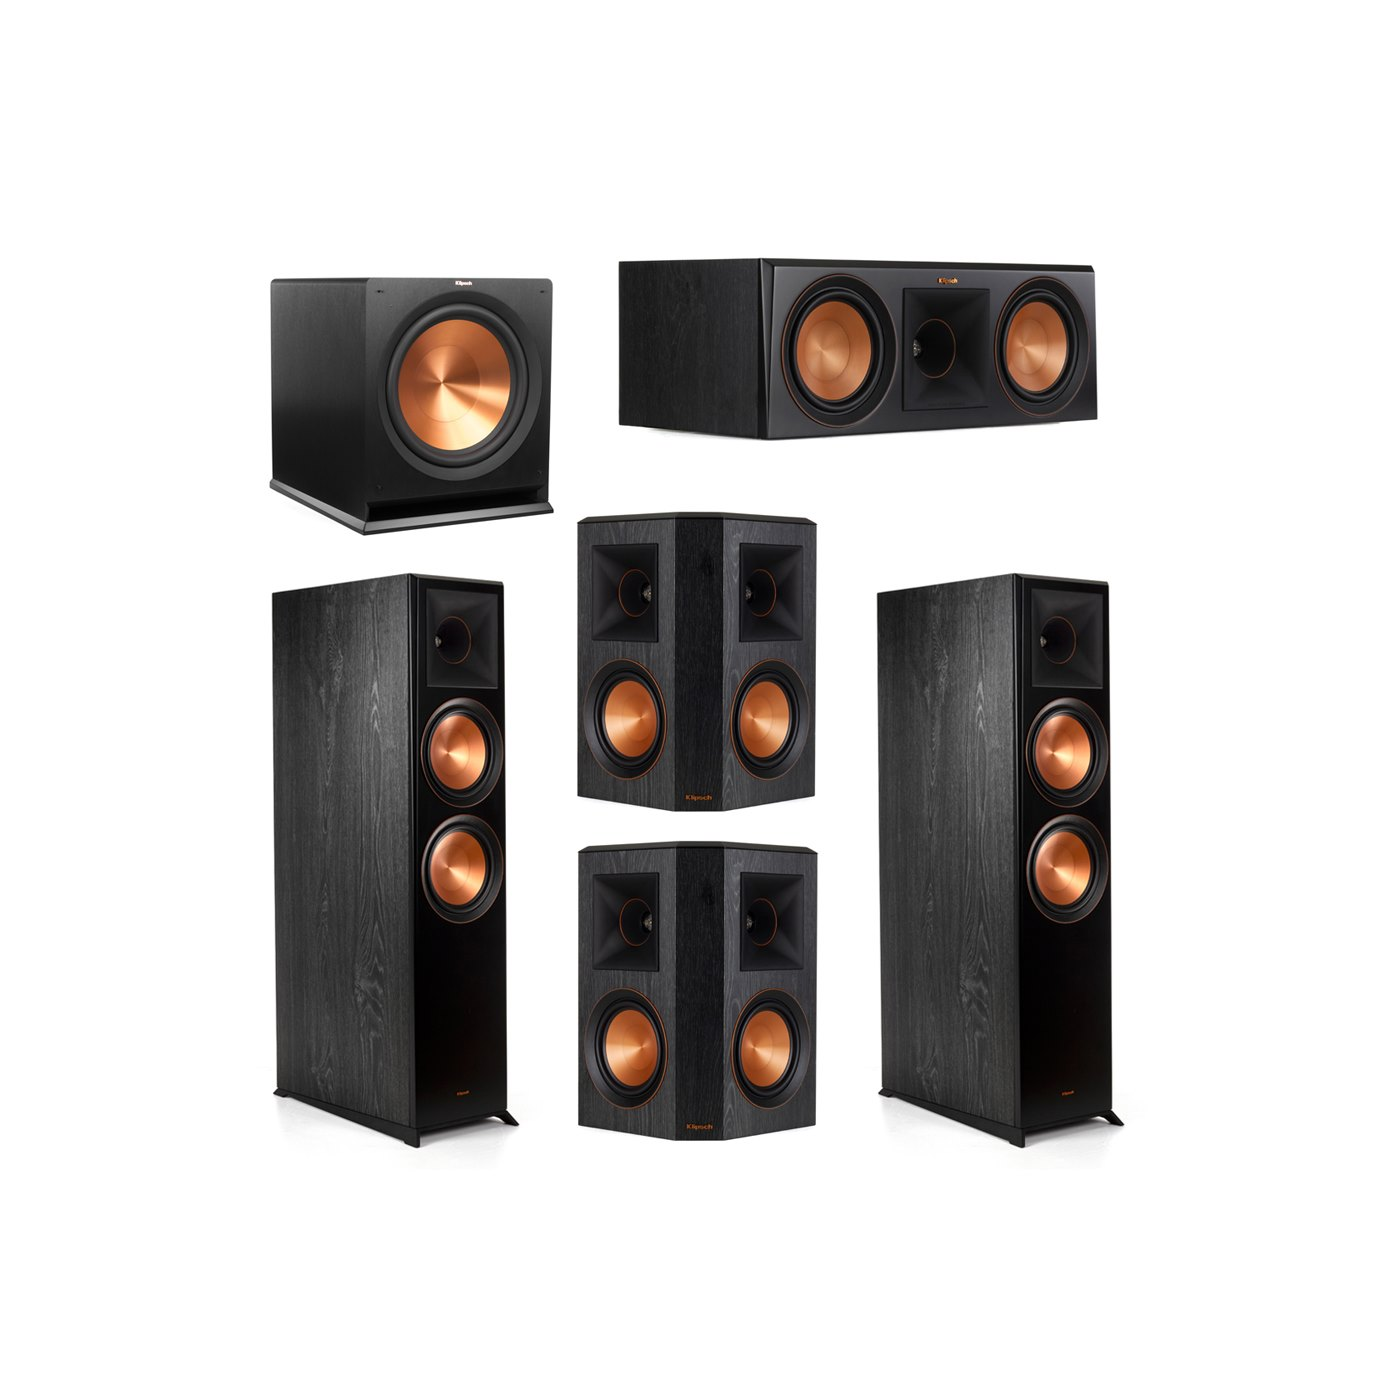 Klipsch 5.1.2 System - 2 RP-8060FA Dolby Atmos Speakers, 1 RP-600C, 2 RP-502S Speakers, 1 R-115SW